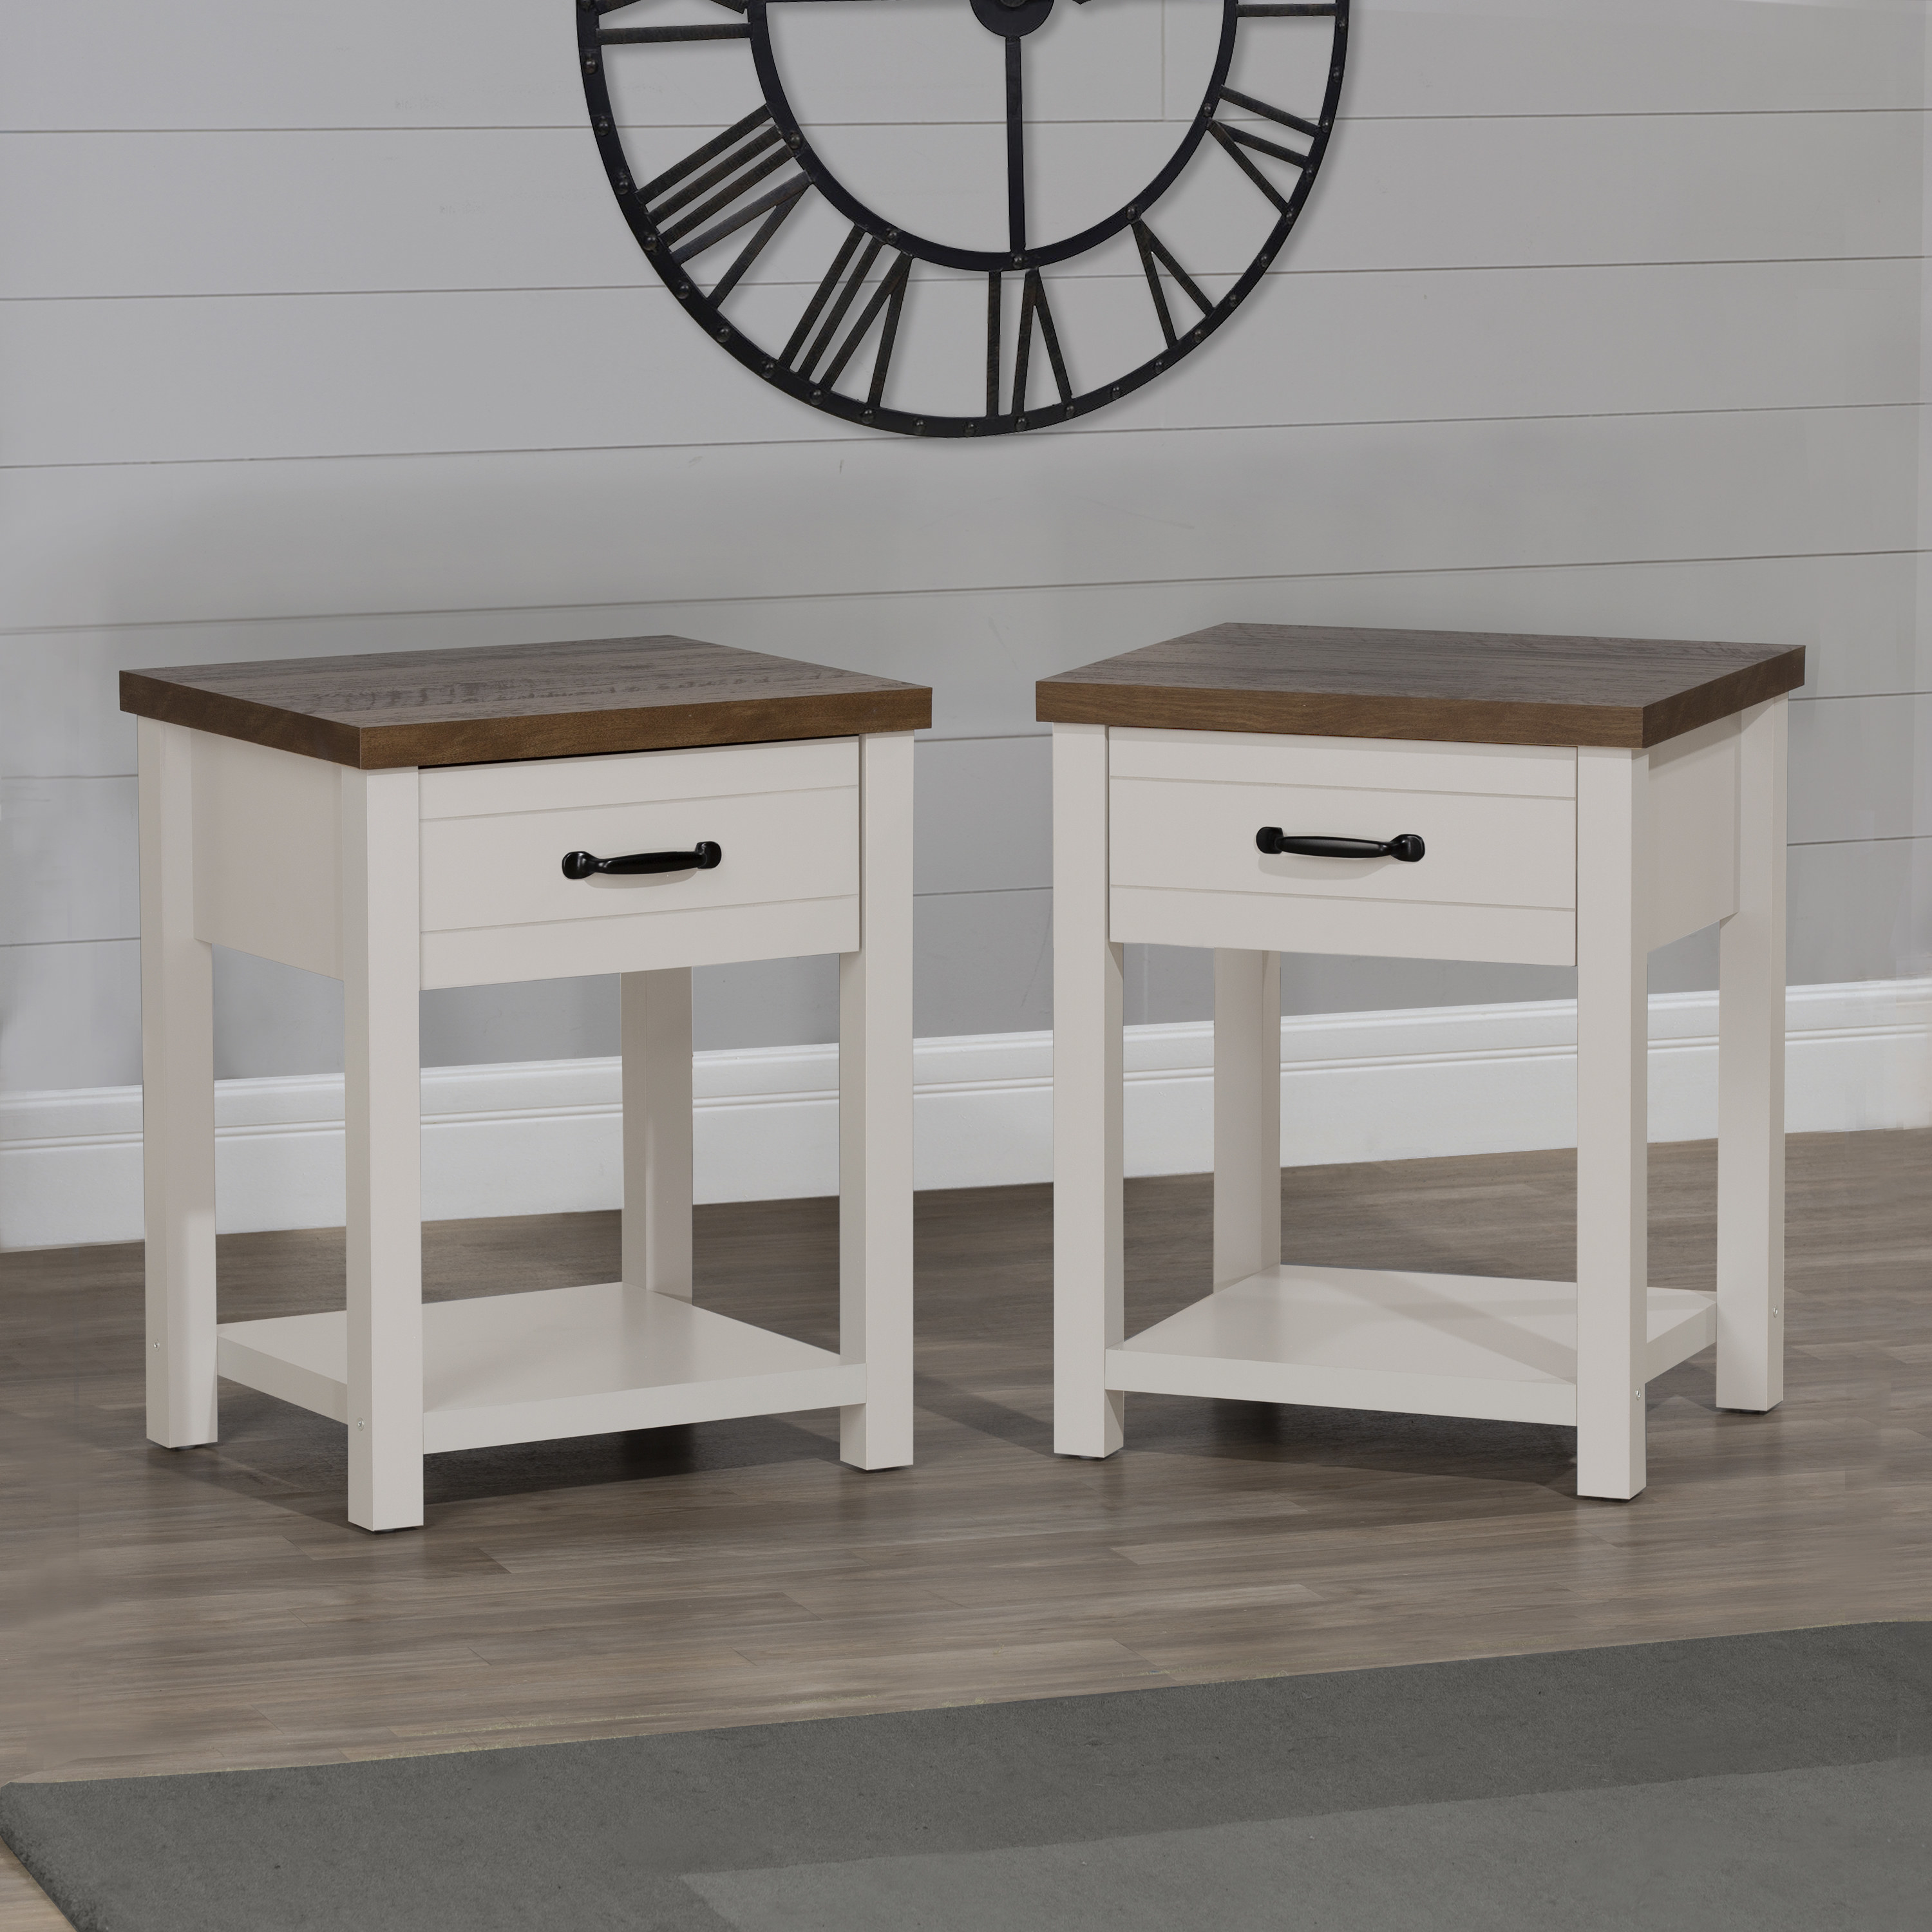 The set of white and dark wood nightstands